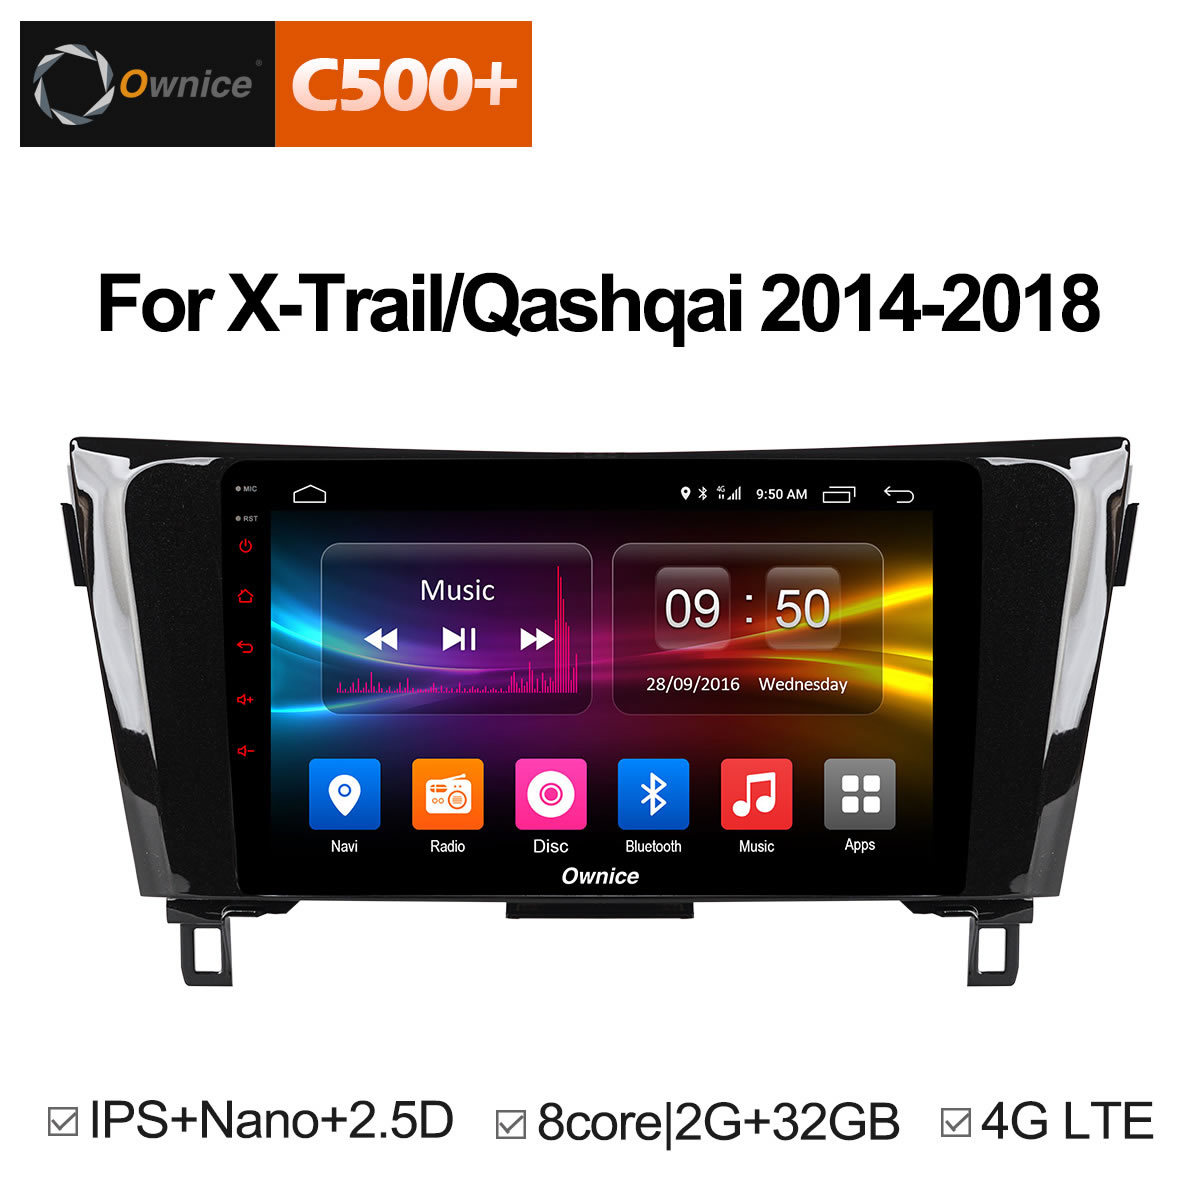 Ownice android 8.1 multimídia carro DVD player 8 core 32 2g RAM gb ROM para Nissan Qashqai X- trilha 2014-2018 4G GPS stereo unidade central